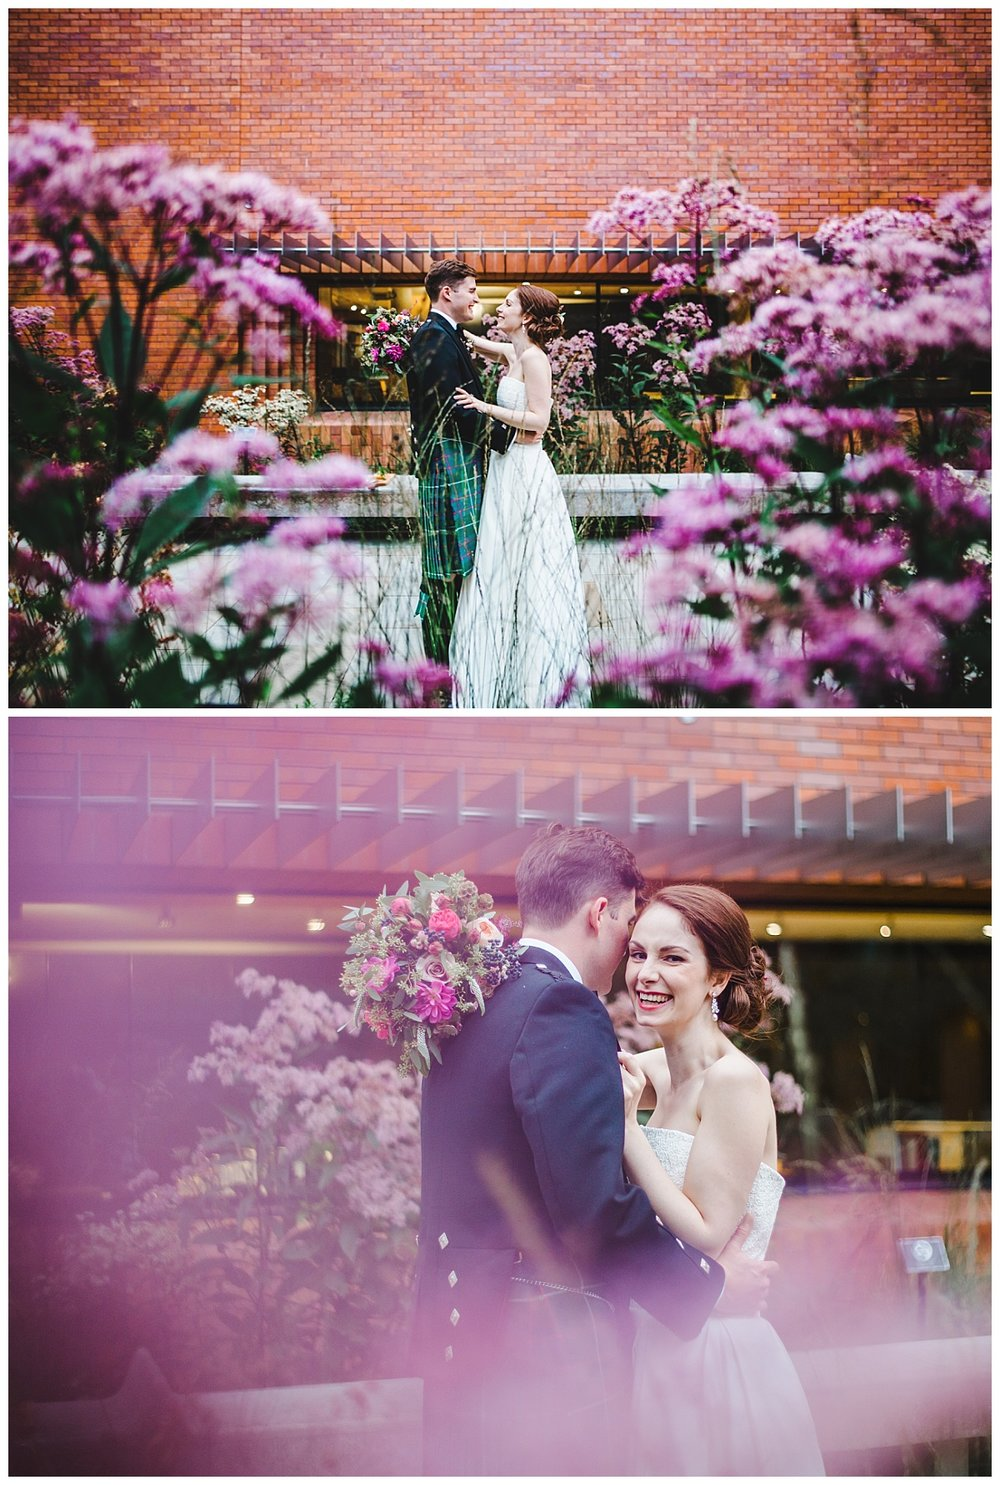 The bride and groom outside of Whitworth Art Gallery- Creative wedding photography